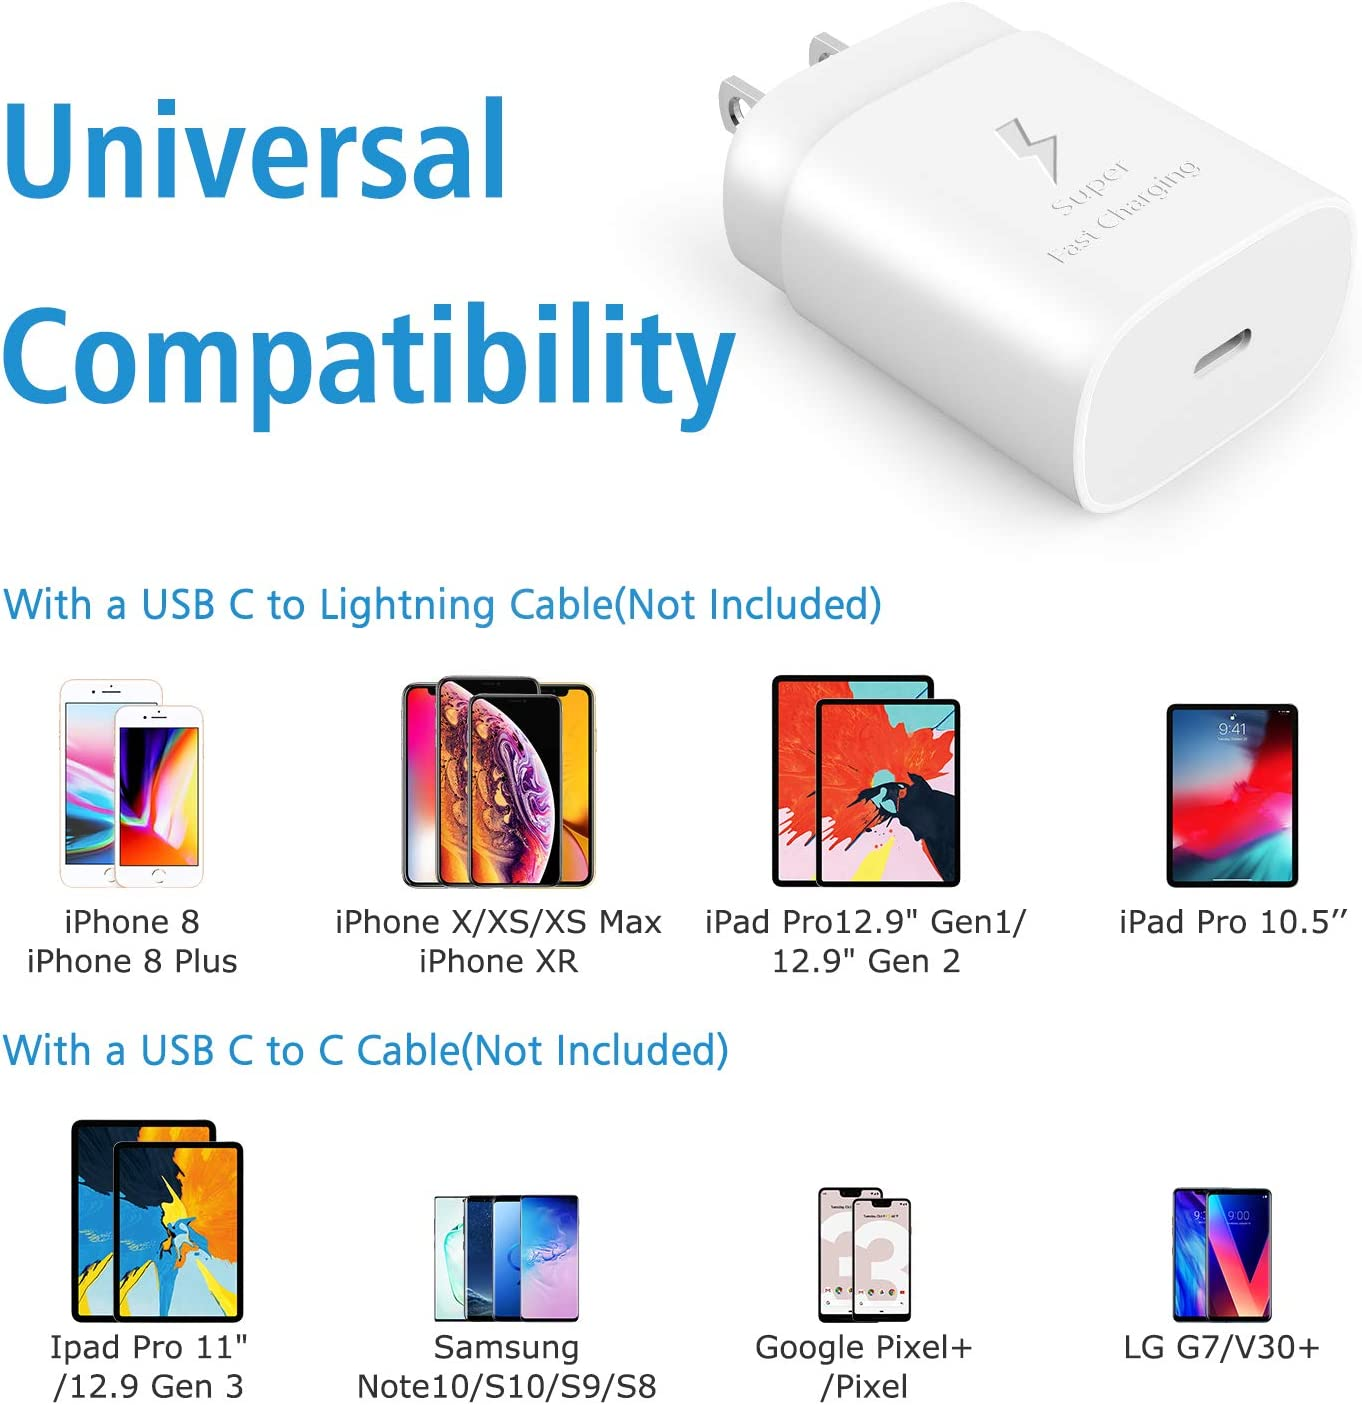 iPad Pro LUOATIP PD 3.0 18W Type C Wall Plug Cube Power Delivery Block Adapter for iPhone 11 Pro Max Xs Max XR X 8 Plus USB C Charger LG ThinQ G8 G7 Samsung Google Pixel 3//2//XL AirPods Pro